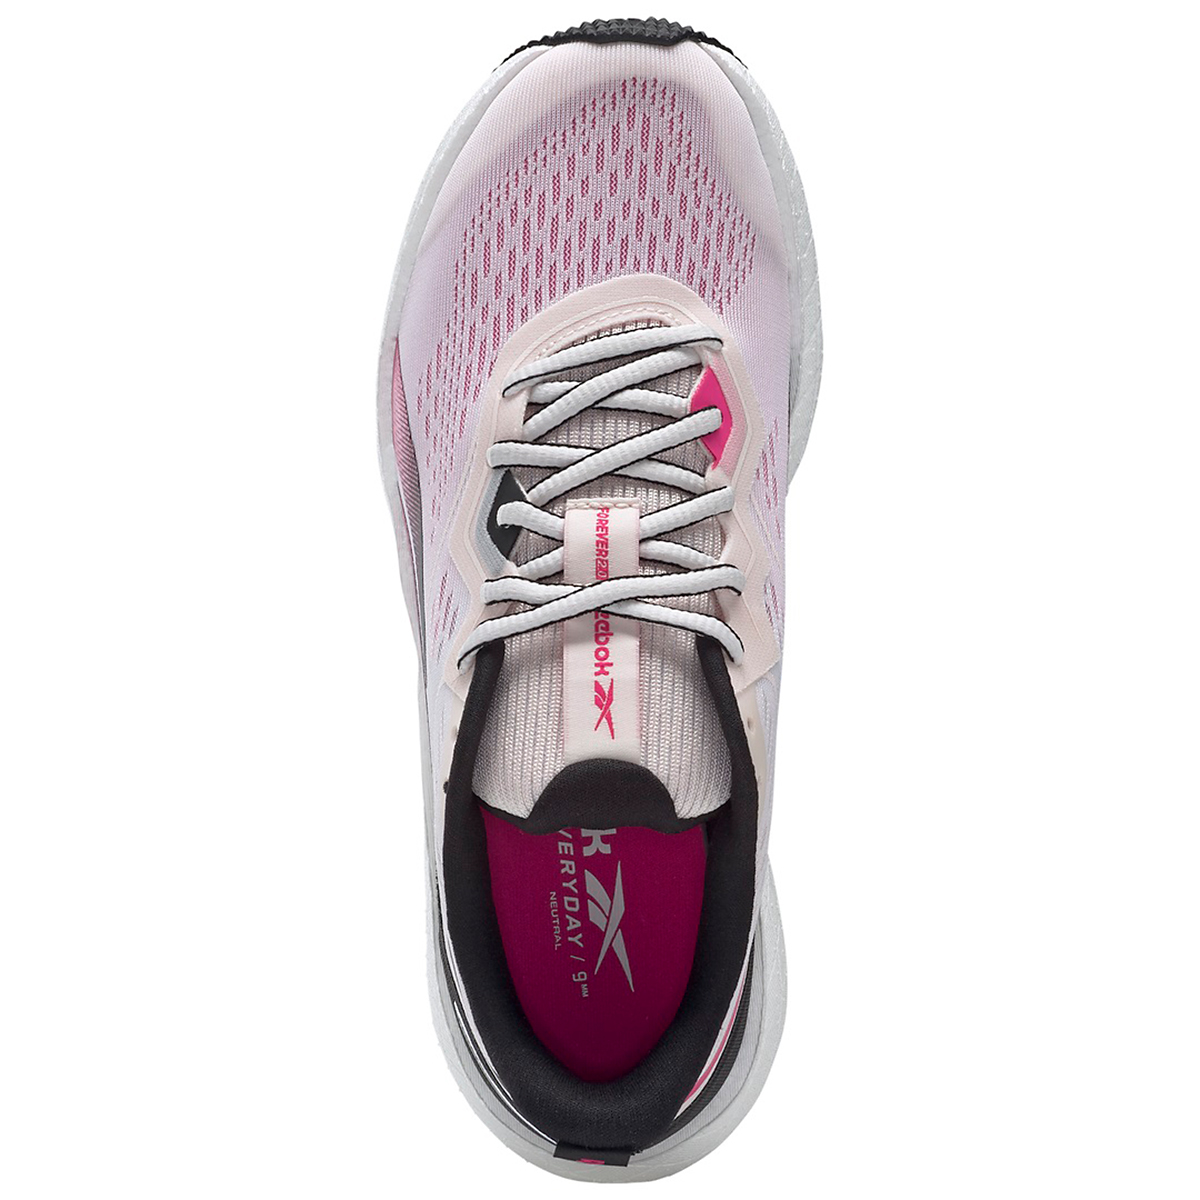 Women's Reebok Forever Floatride Energy 2.0 Running Shoe - Color: Glass Pink/Black/Proud Pink - Size: 5 - Width: Regular, Glass Pink/Black/Proud Pink, large, image 3